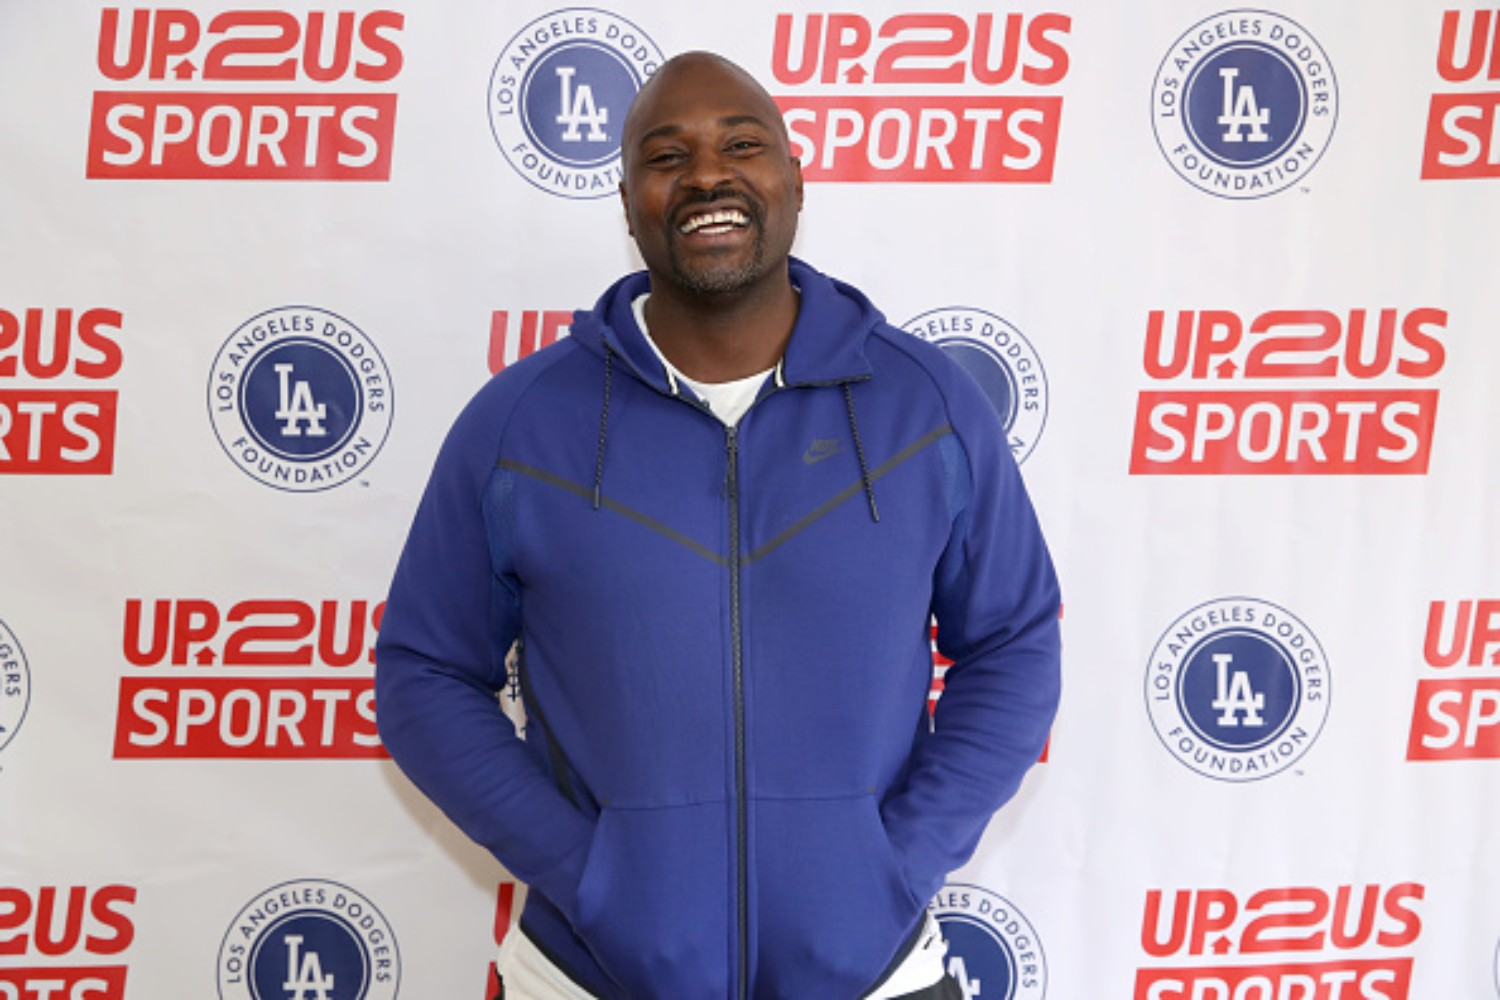 Marcellus Wiley spent 10 seasons in the NFL as a defensive end